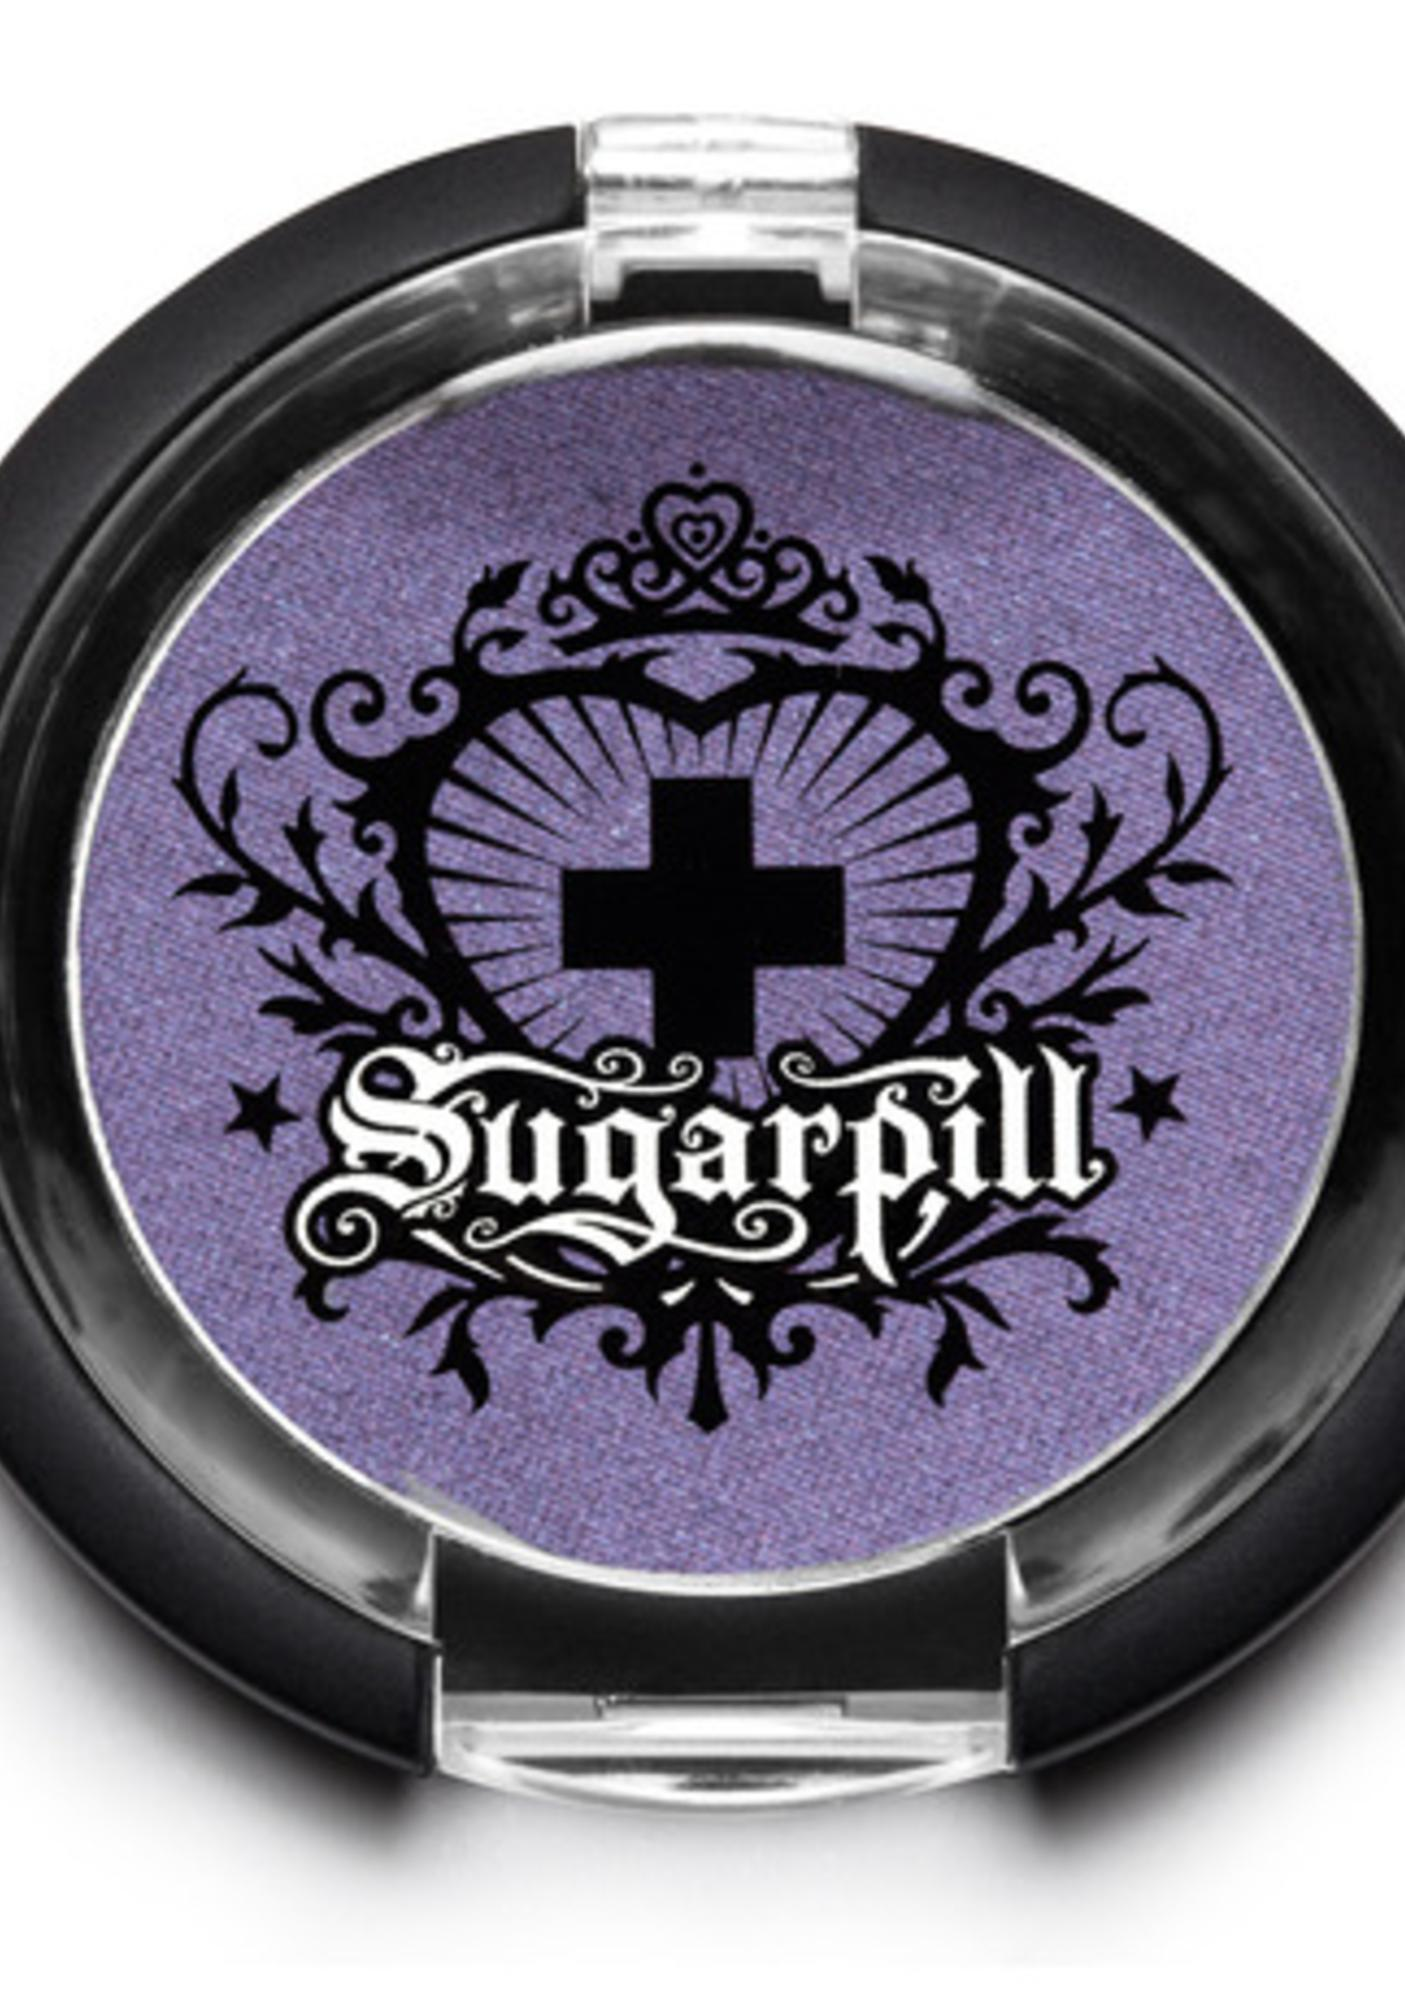 Sugarpill Elemental Chaos Pressed Eyeshadow